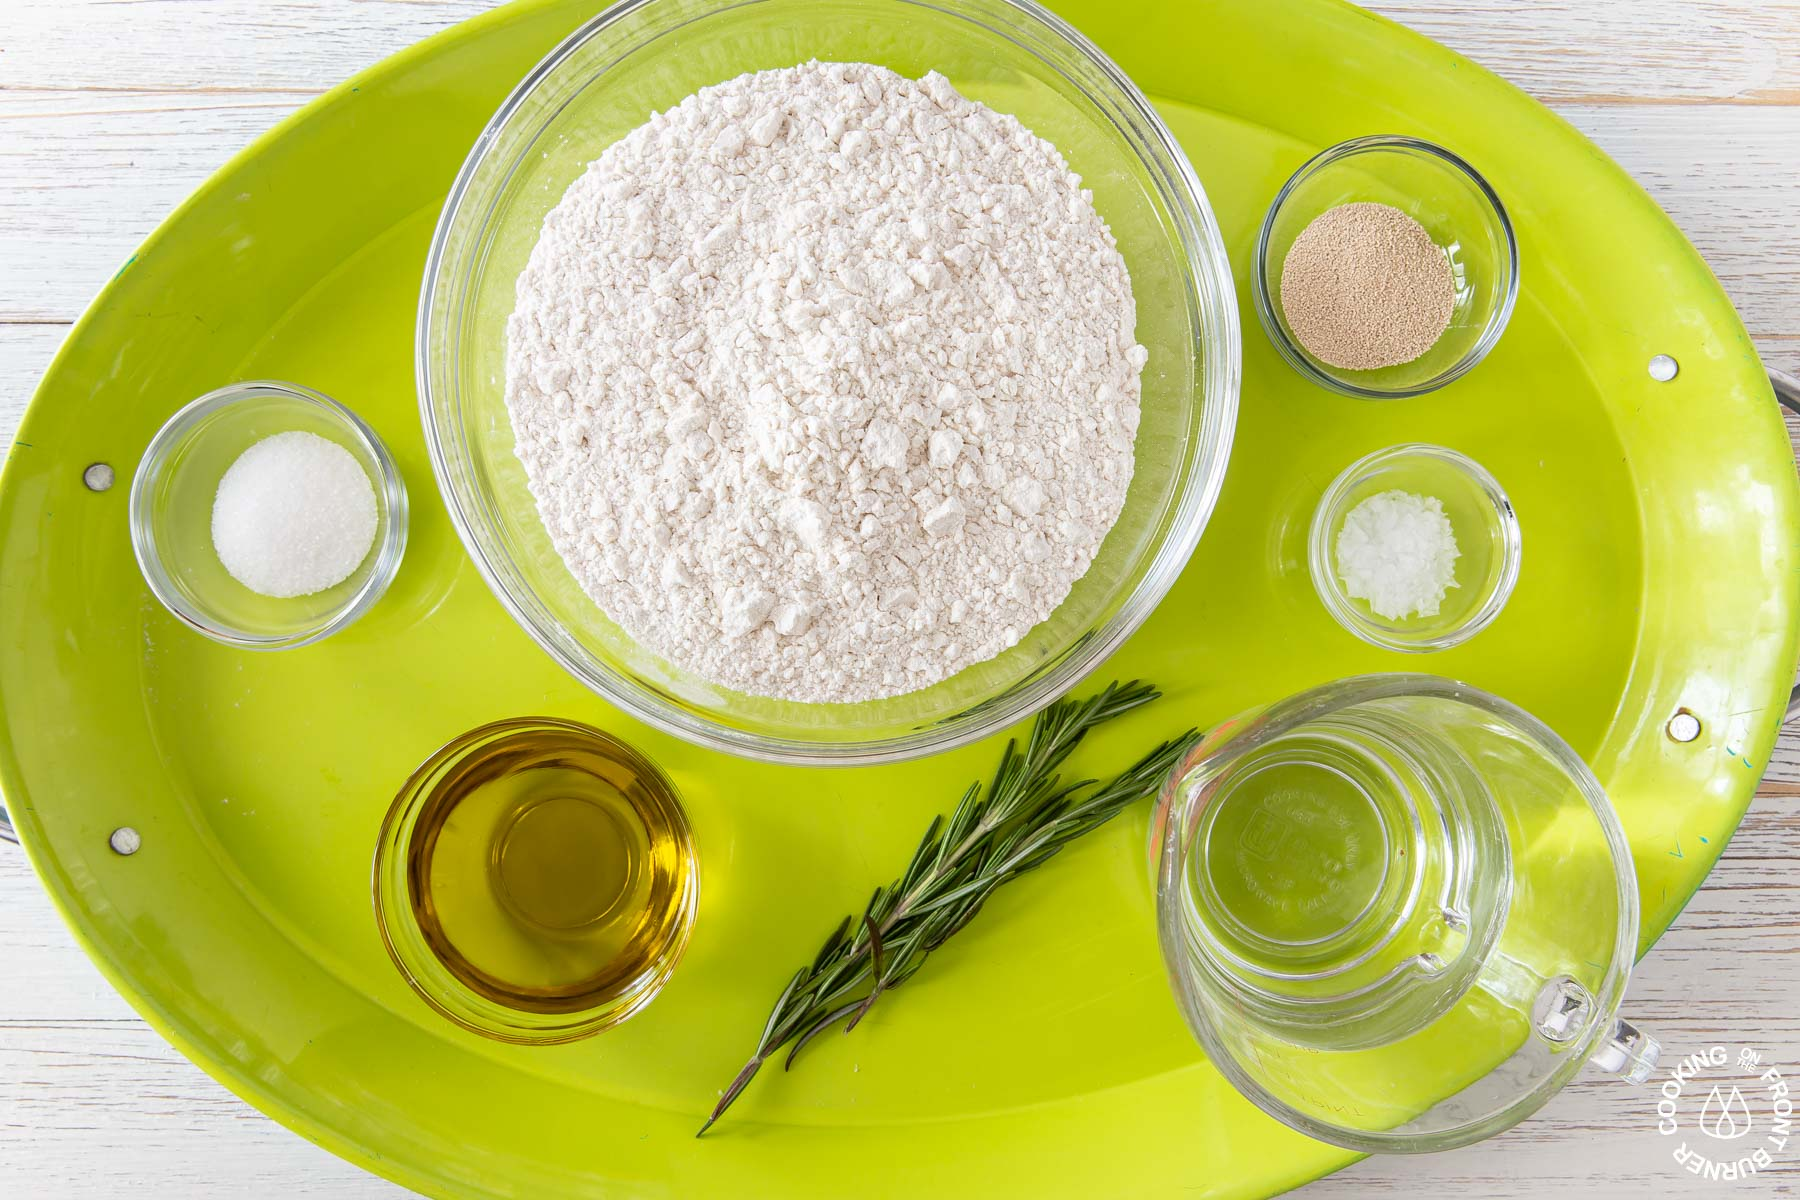 ingredients needed to make skillet focaccia bread